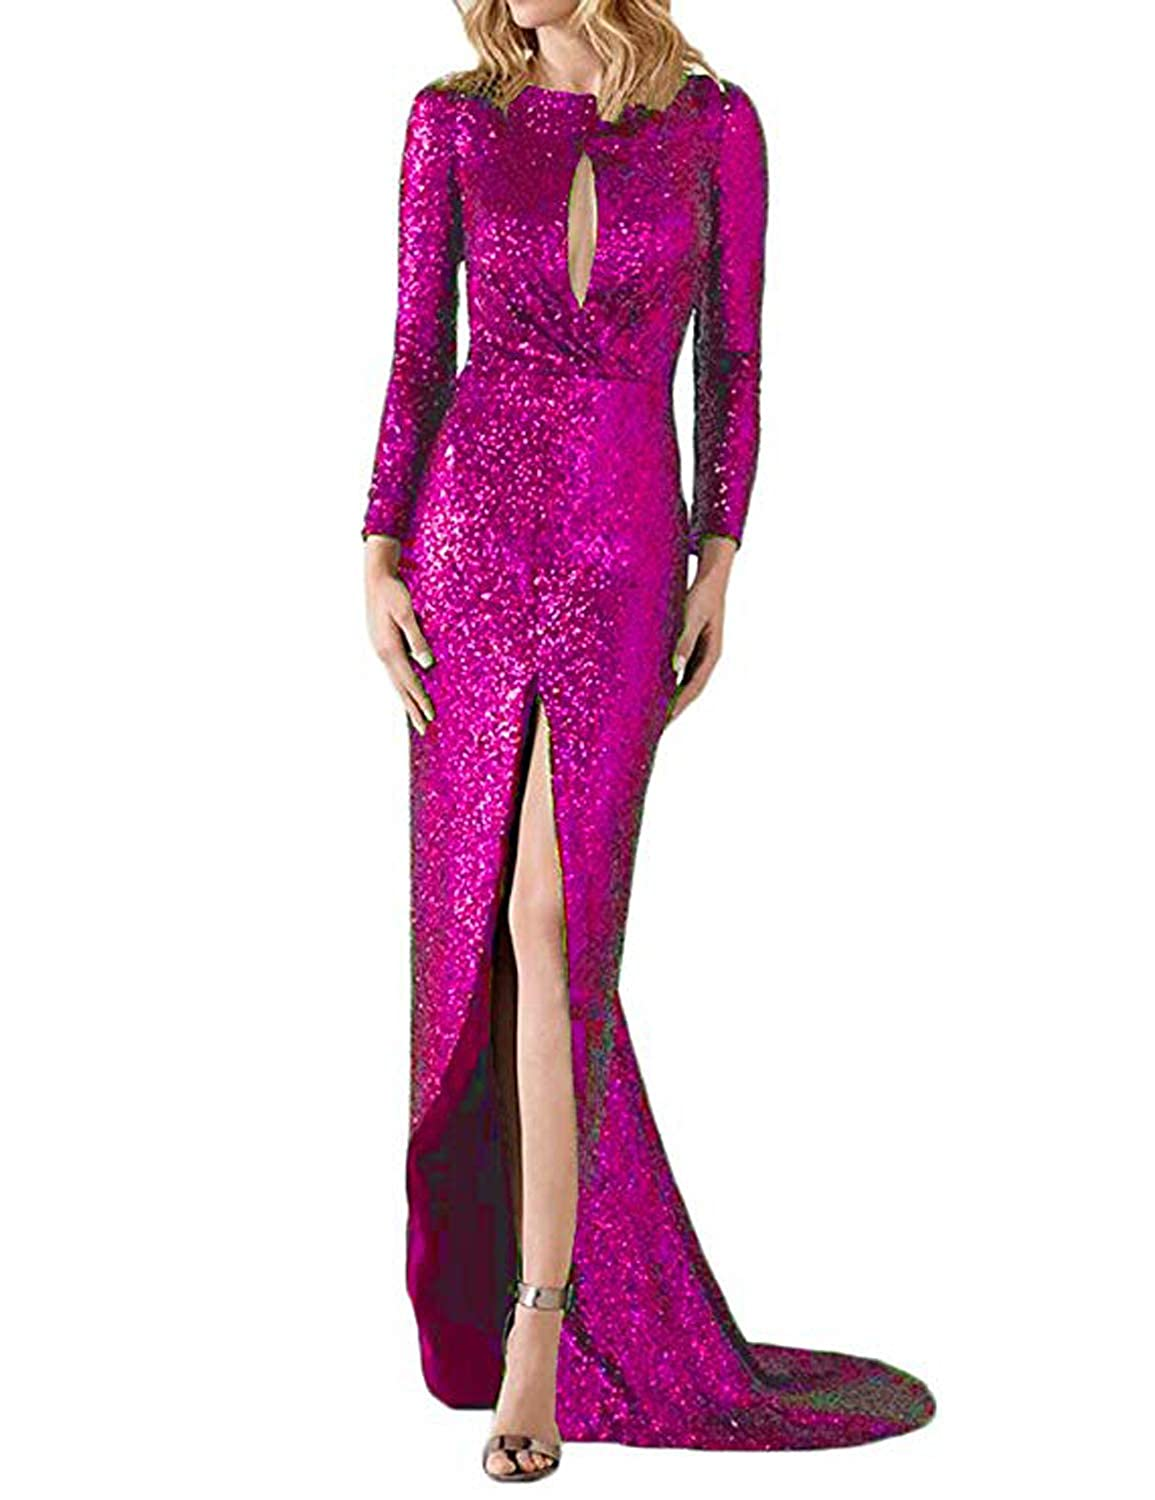 Fuchsia CIRCLEWLD Slim Sequin Evening Dresses with Slit Long Sleeves Wedding Party Women Gown E217